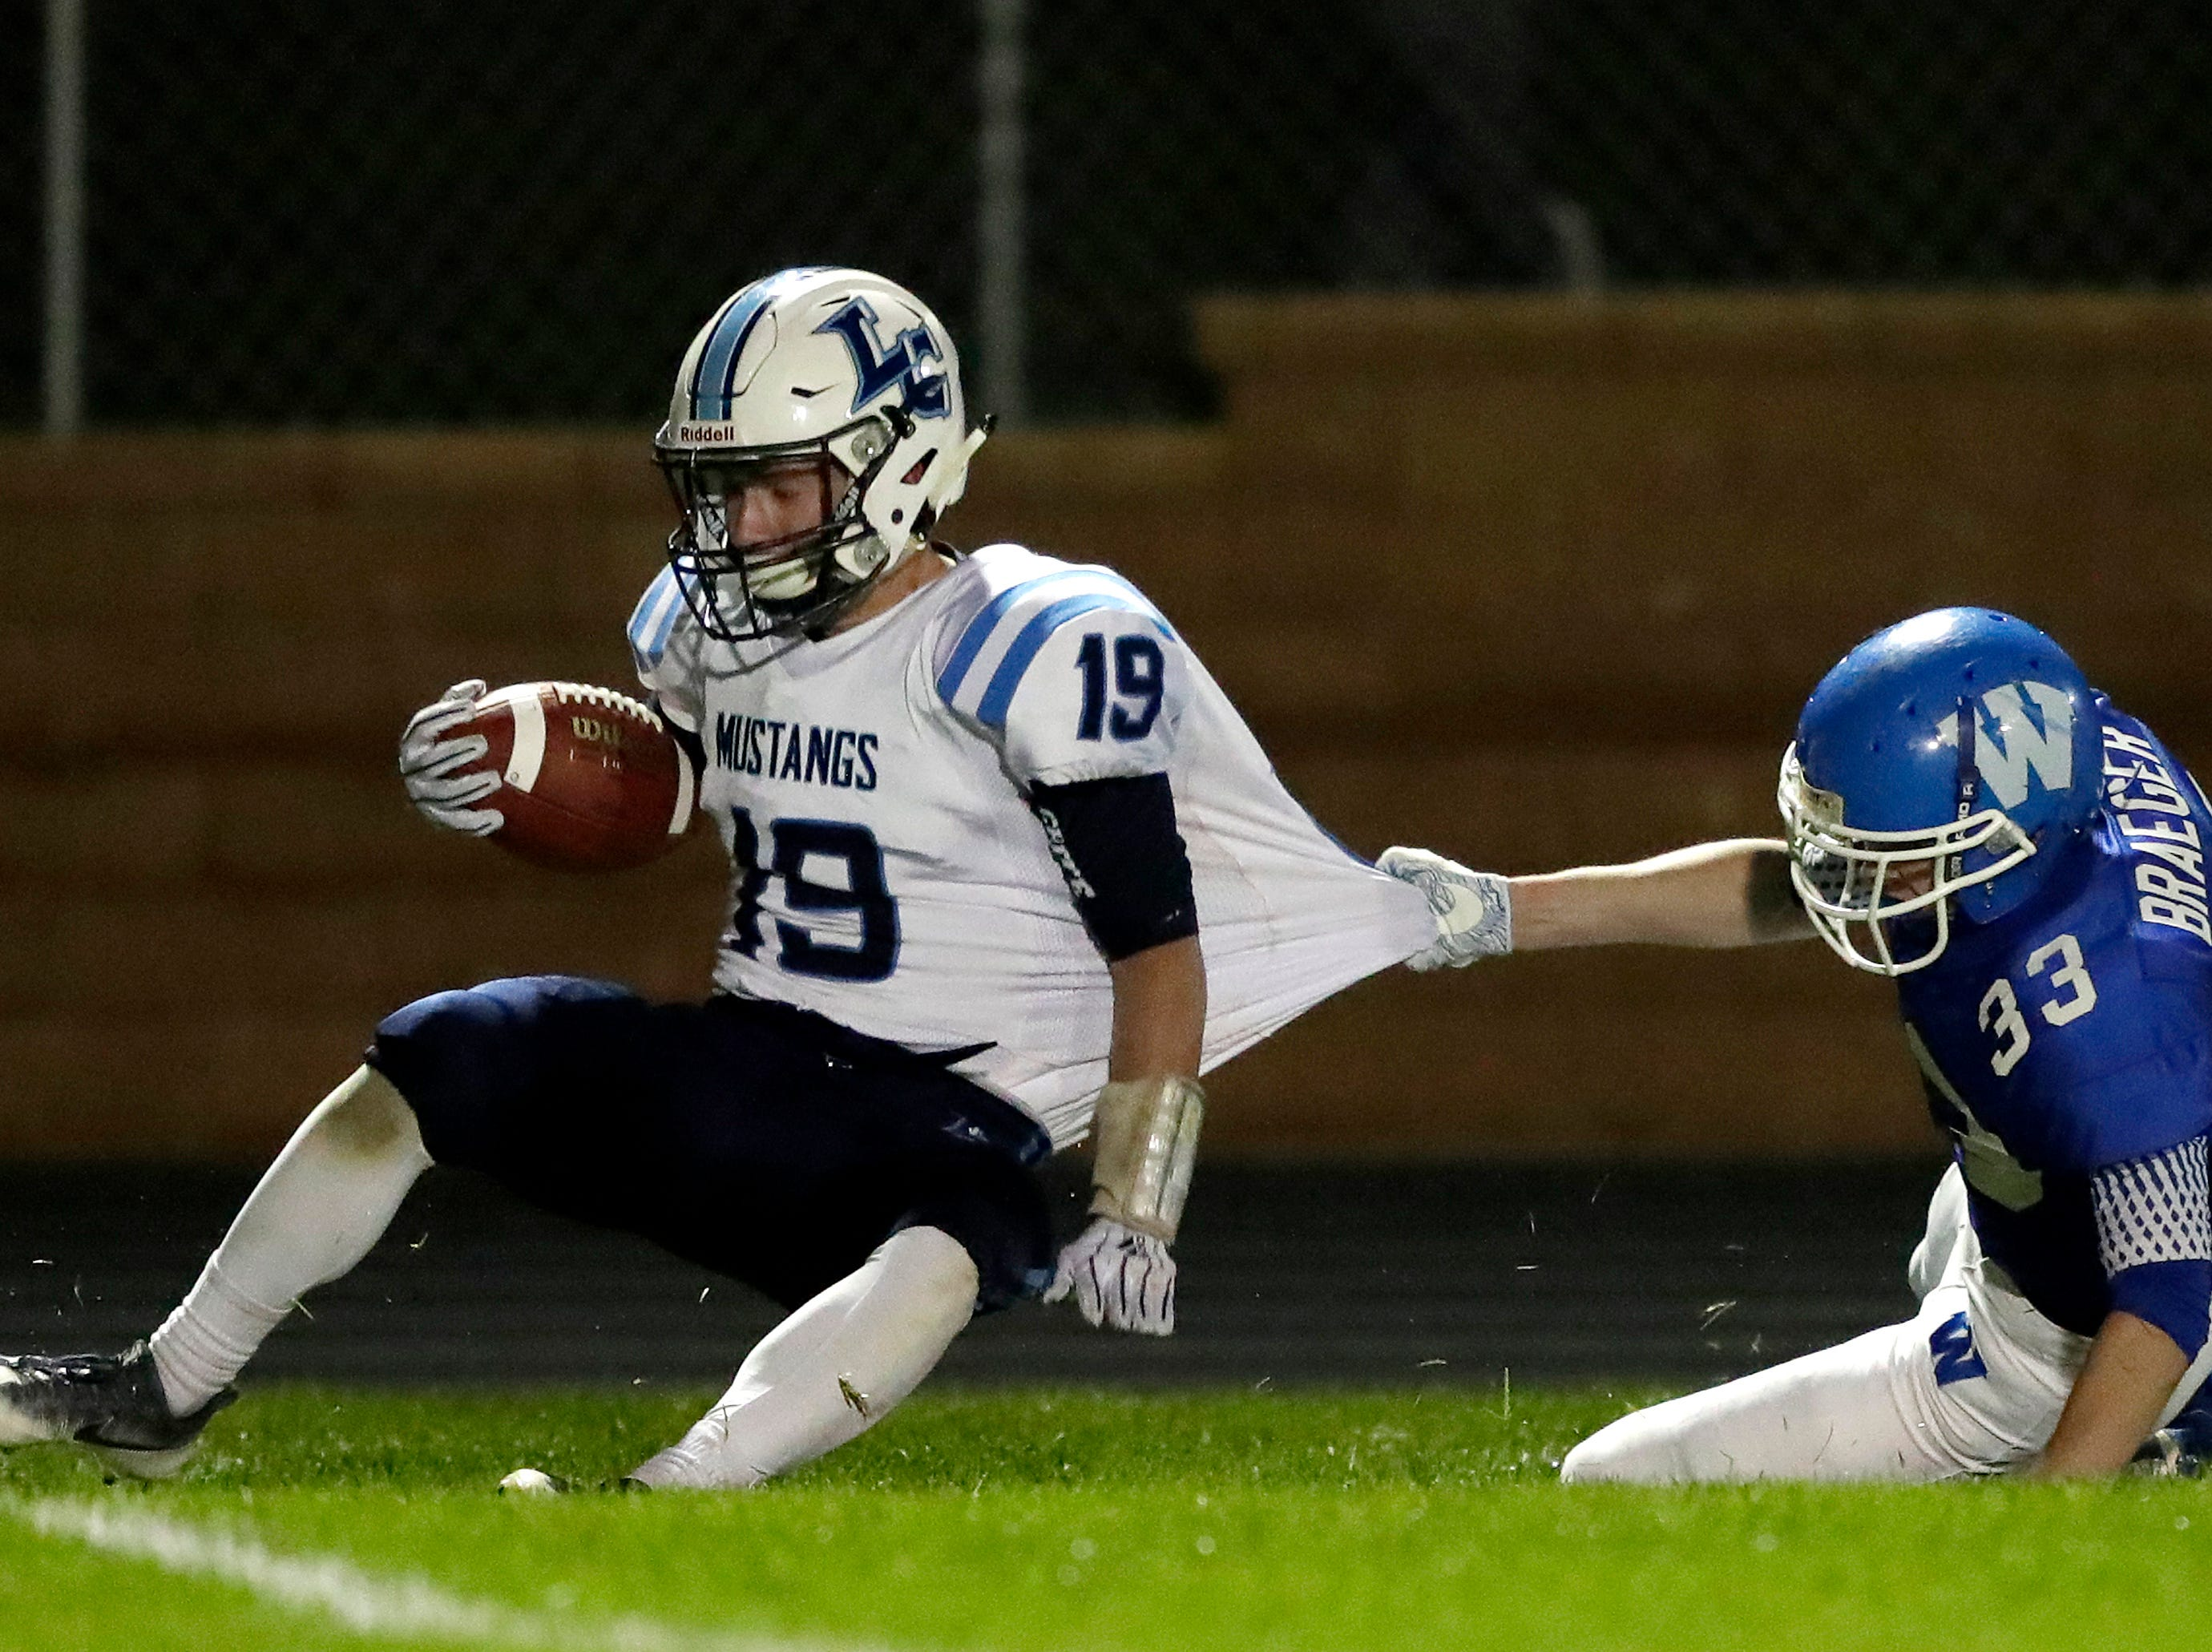 Little Chute High School's #19 Jacob Lillge against Wrightstown High School's #33 Will Braeger during their North Eastern Conference football game on Friday, October 12, 2018 in Wrightstown Wis. 